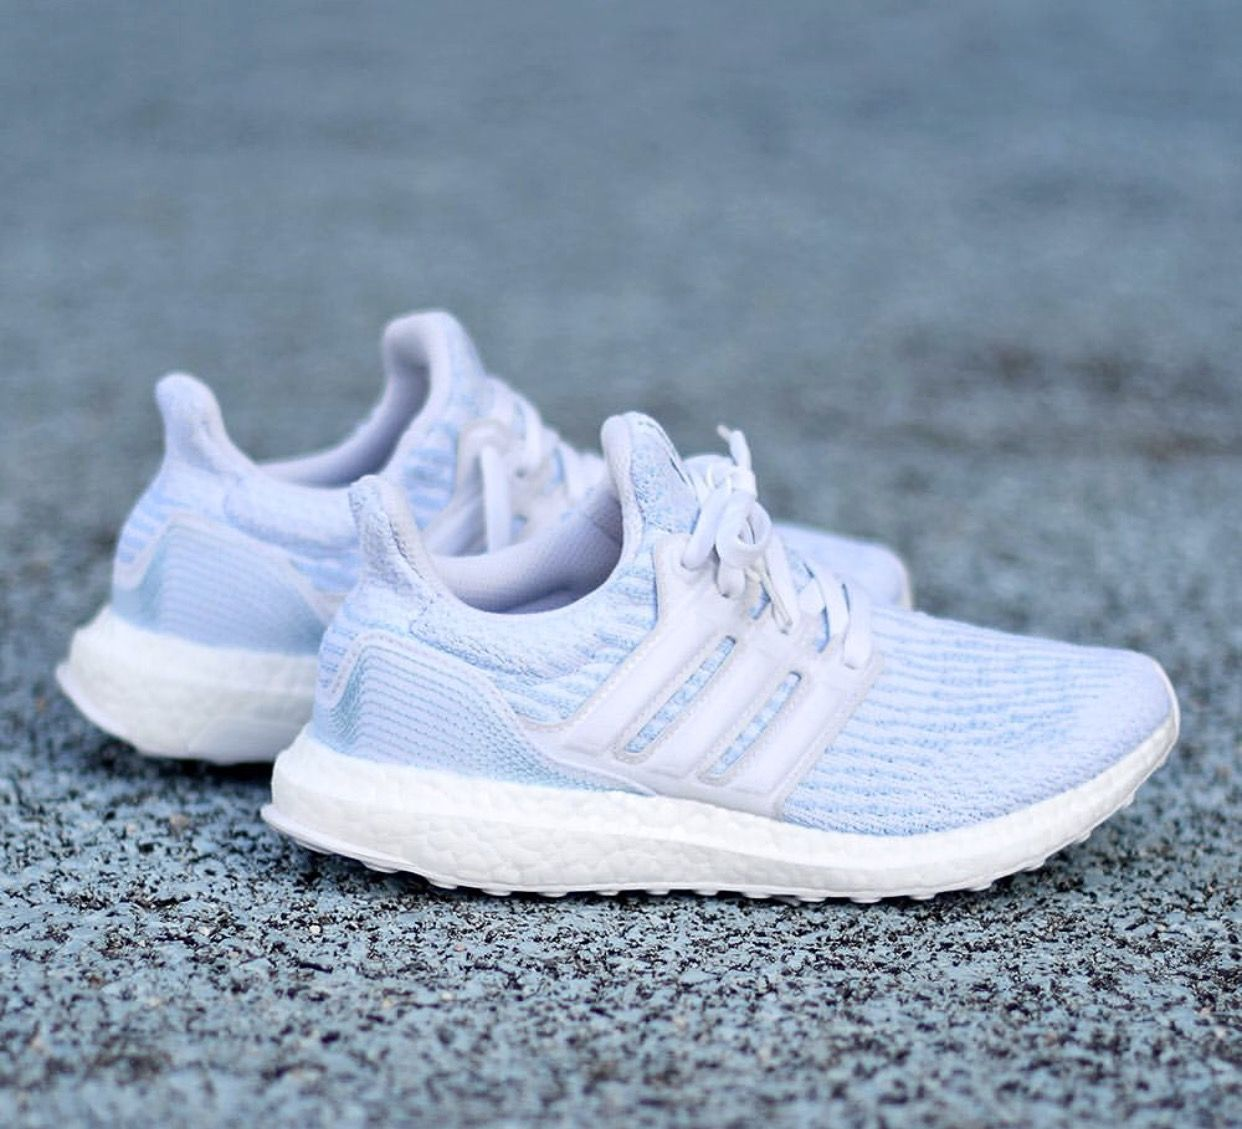 4b4ad0222 Made from 11 plastic bottles  recycled ocean waste. Adidas x Parley Ultra  Boost 3.0. Release date not yet confirmed.